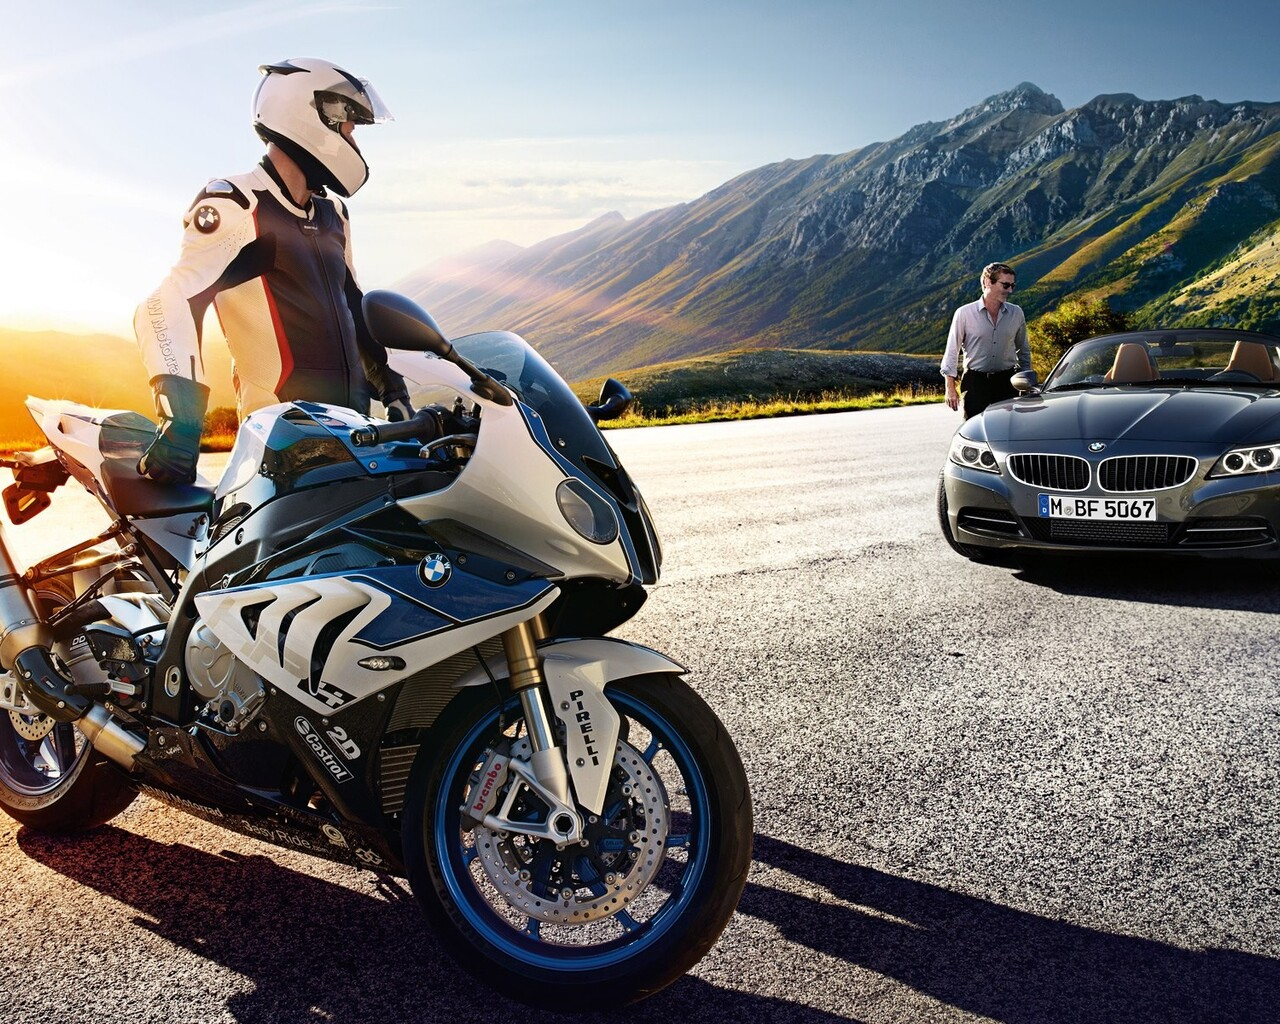 1280x1024 Bmw S1000rr Vs Car 1280x1024 Resolution Hd 4k Wallpapers Images Backgrounds Photos And Pictures